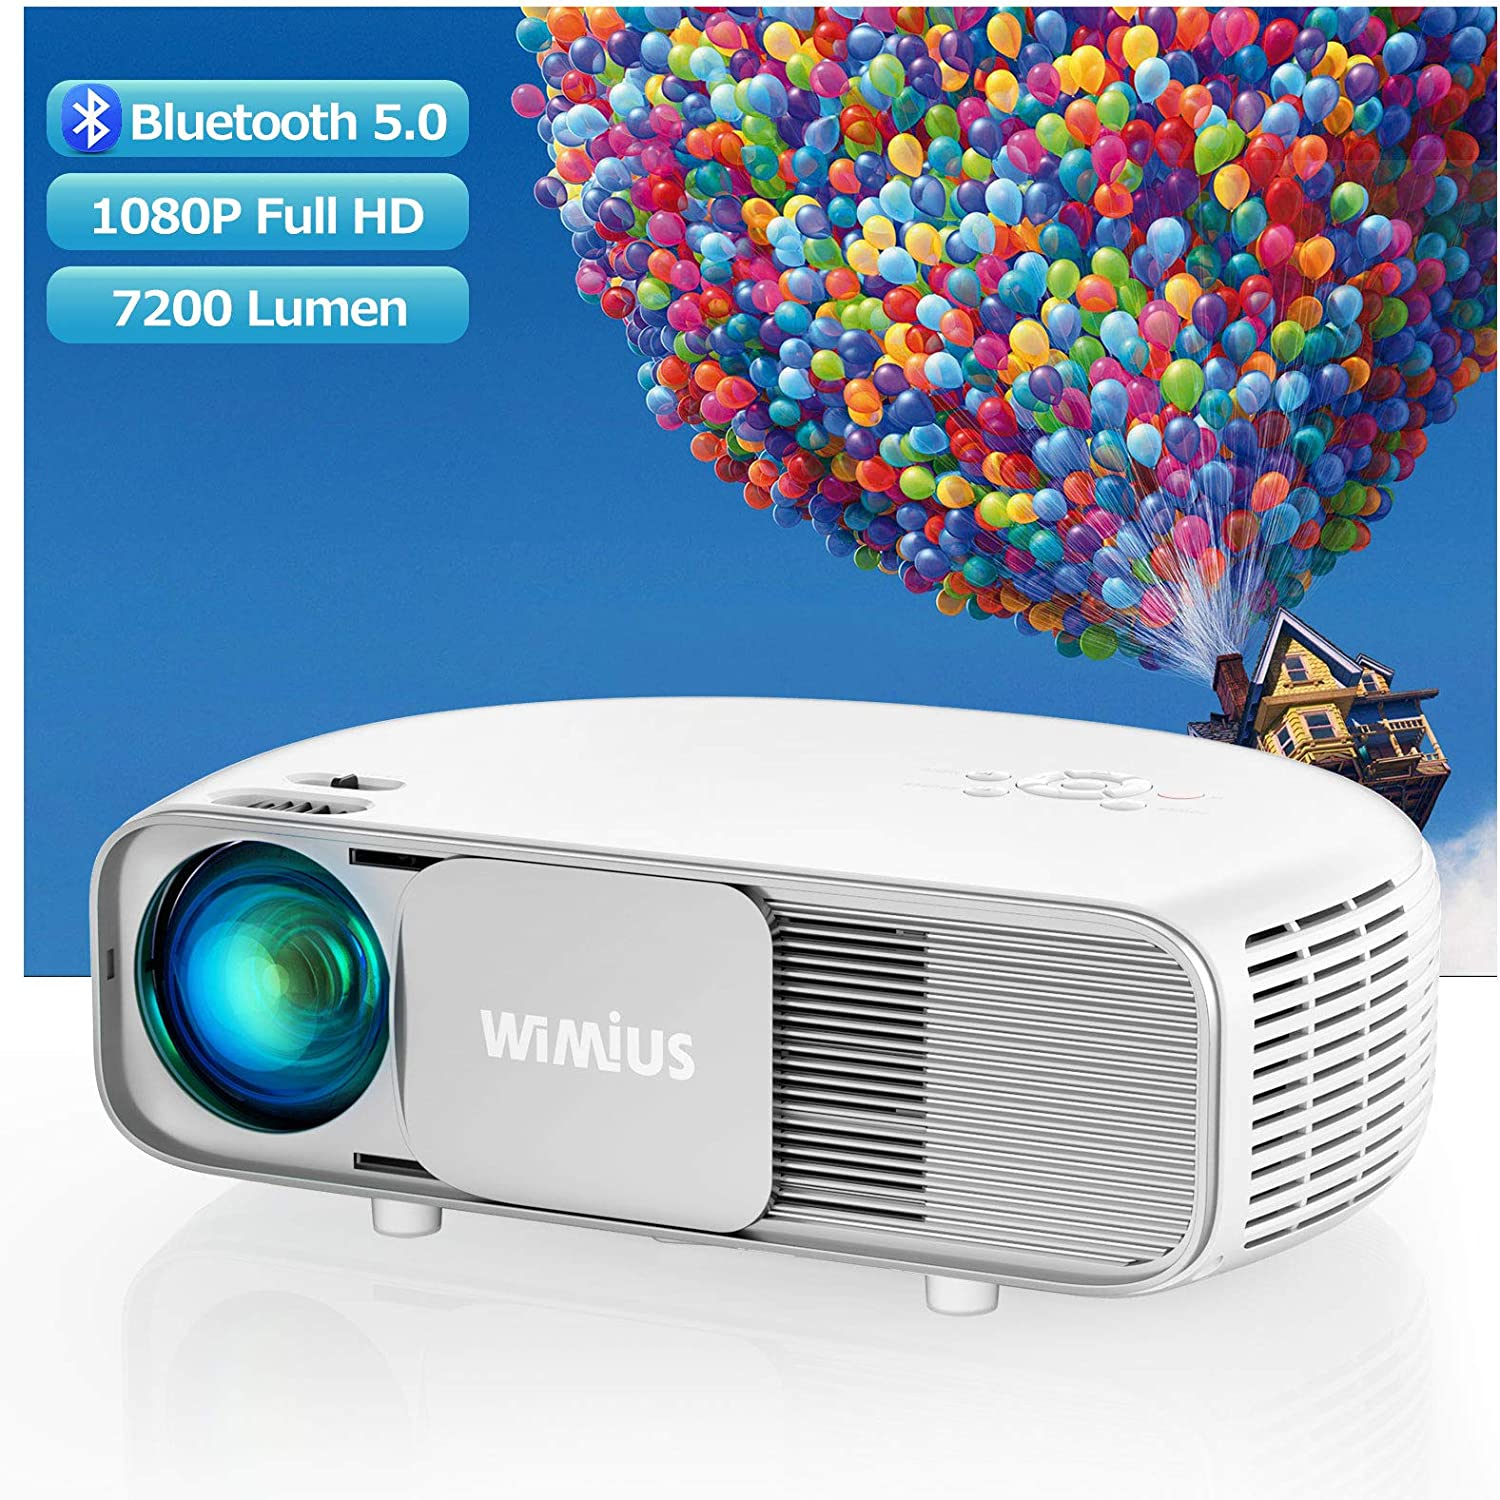 WiMiUS S4 Home Cinema Projector 7200 lumens 300 inches